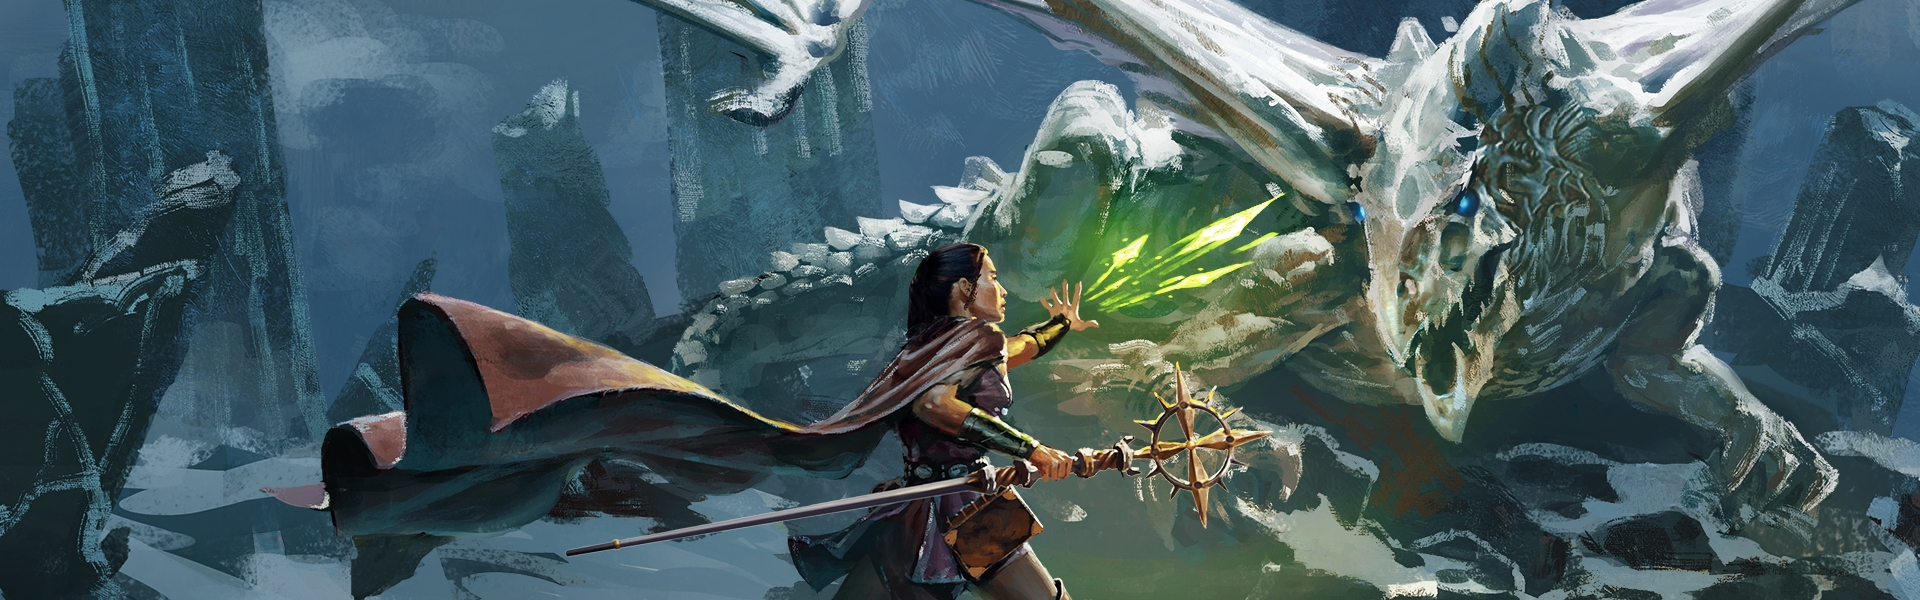 A close up of the cover art for the Dungeons & Dragons Essentials Kit shows a player-character and their sidekick going up against a dragon on a snowy hilltop.